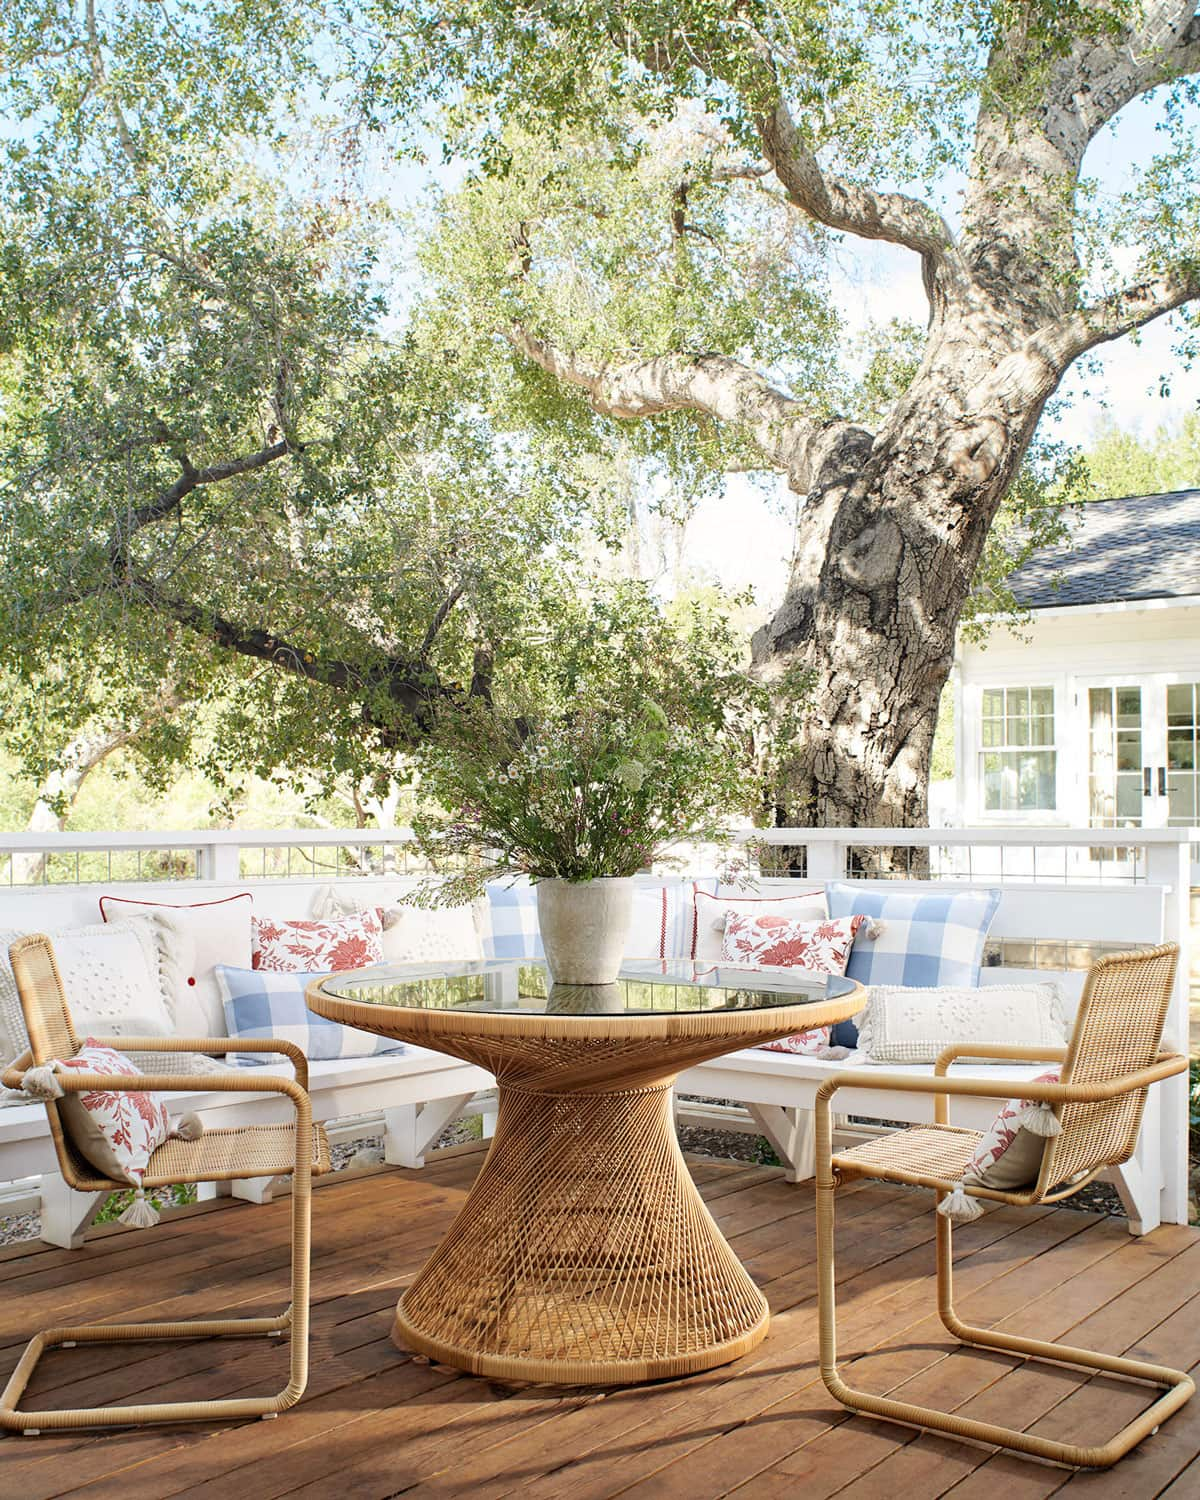 table and chairs in garden setting